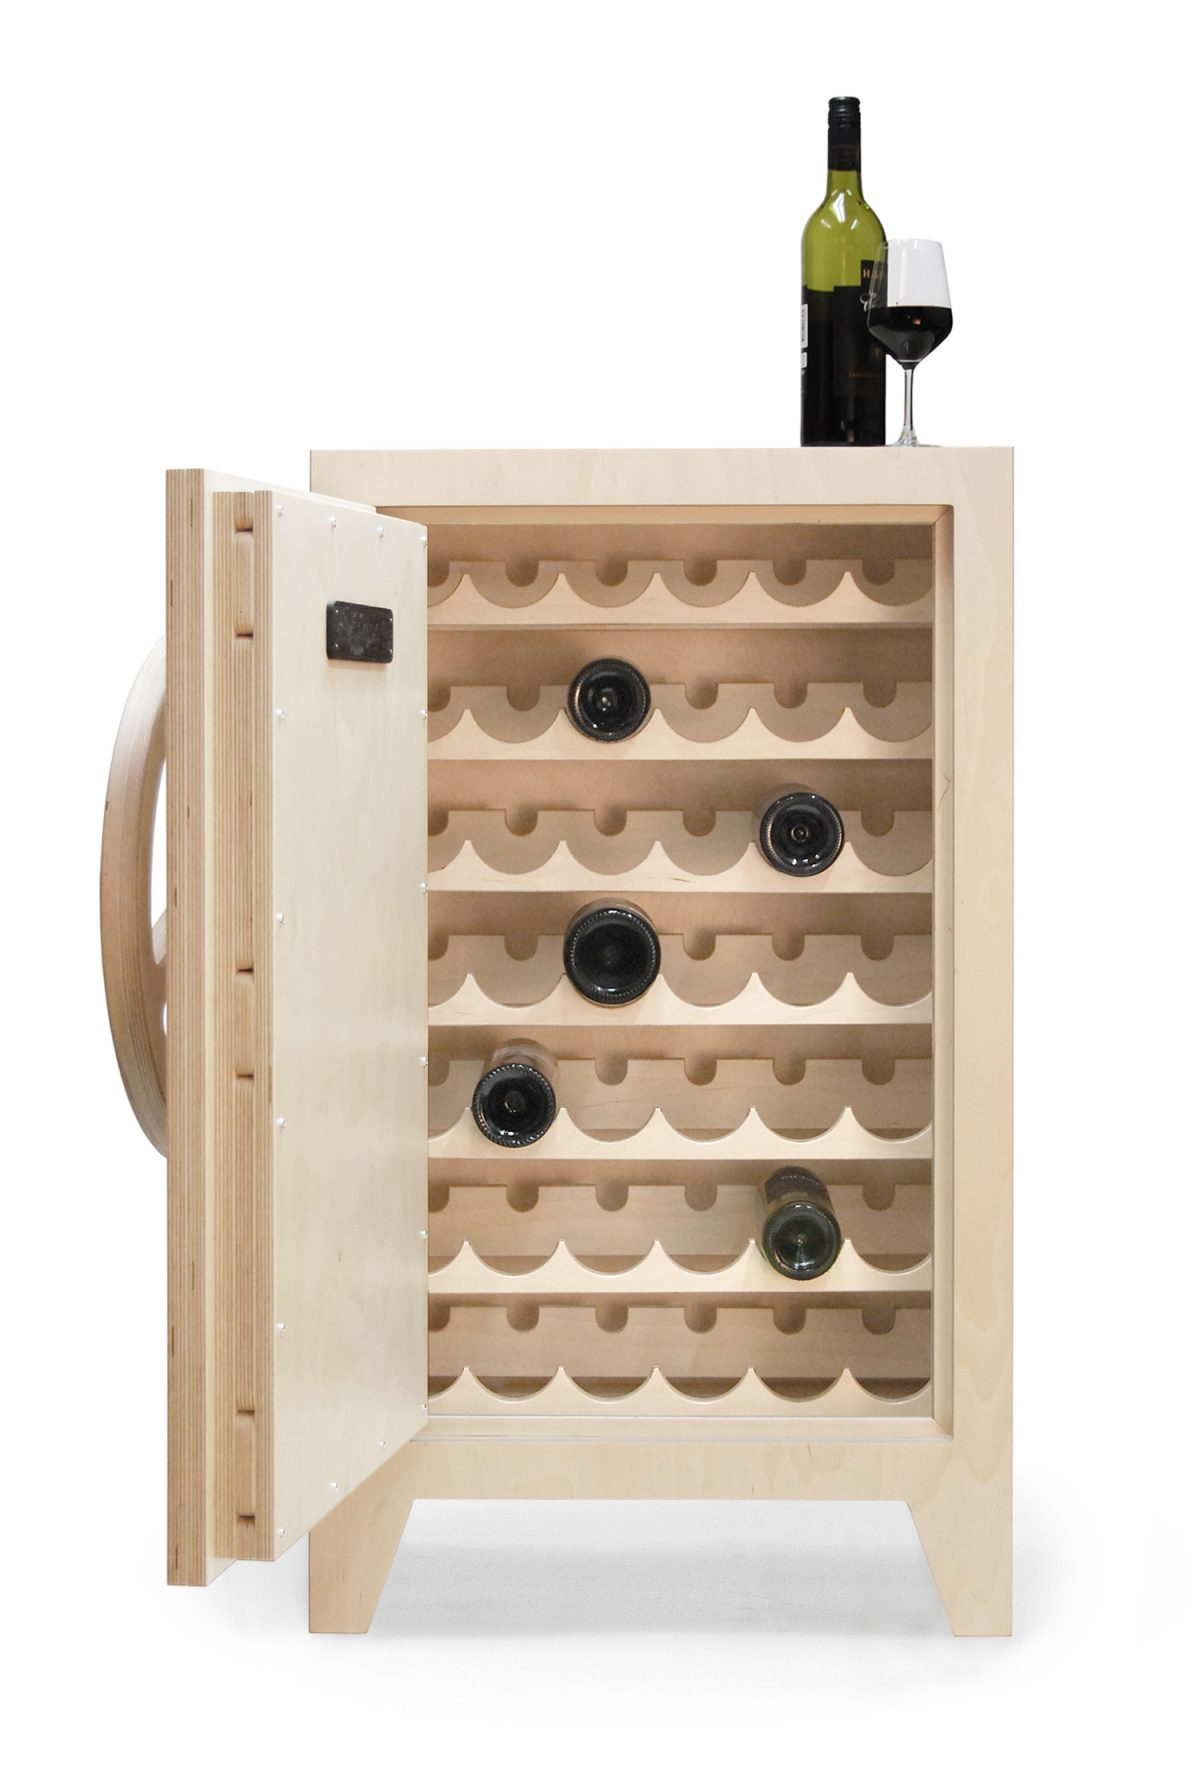 Mr Knox wine safe by Stephan Siepermann (kluis, drankkast)